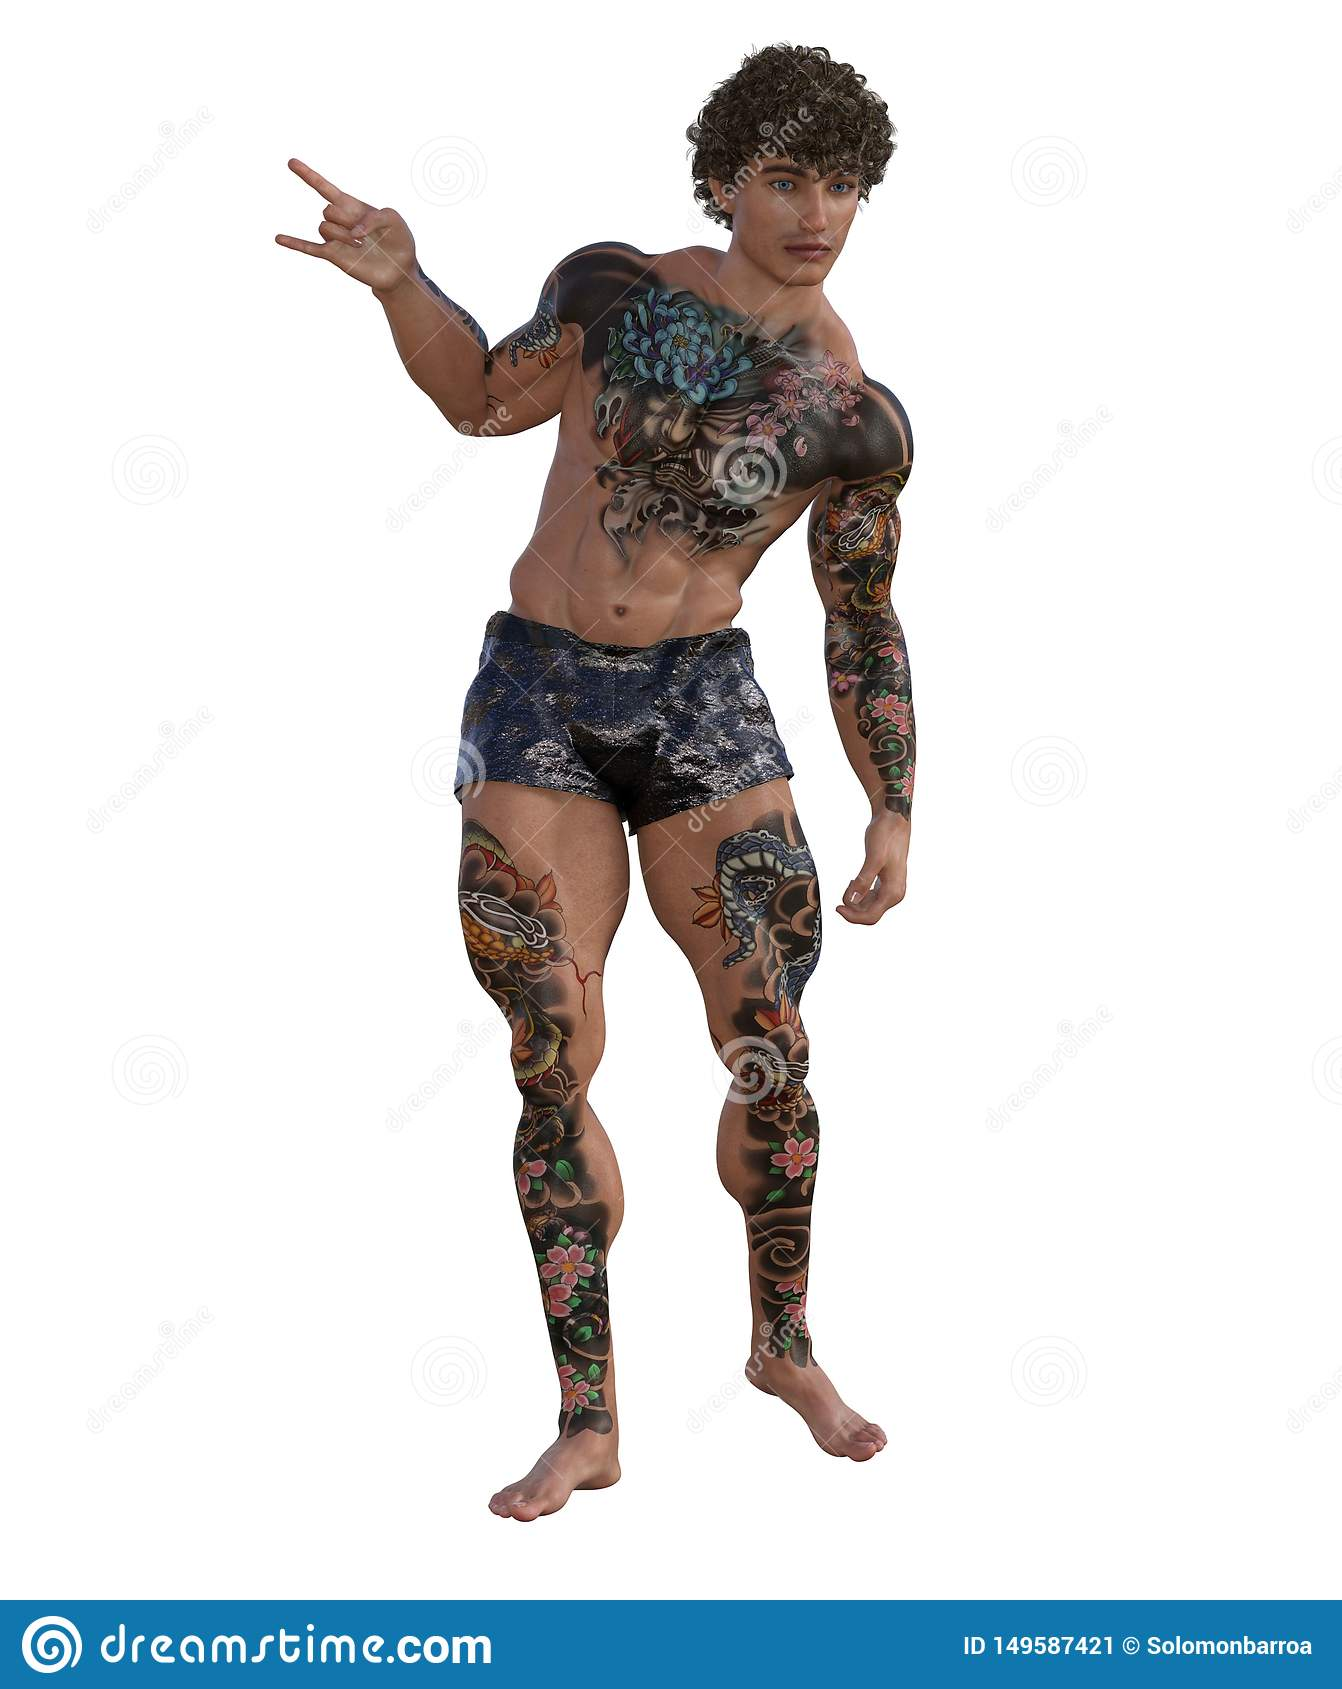 3D Illustration of a tattooed muscular man